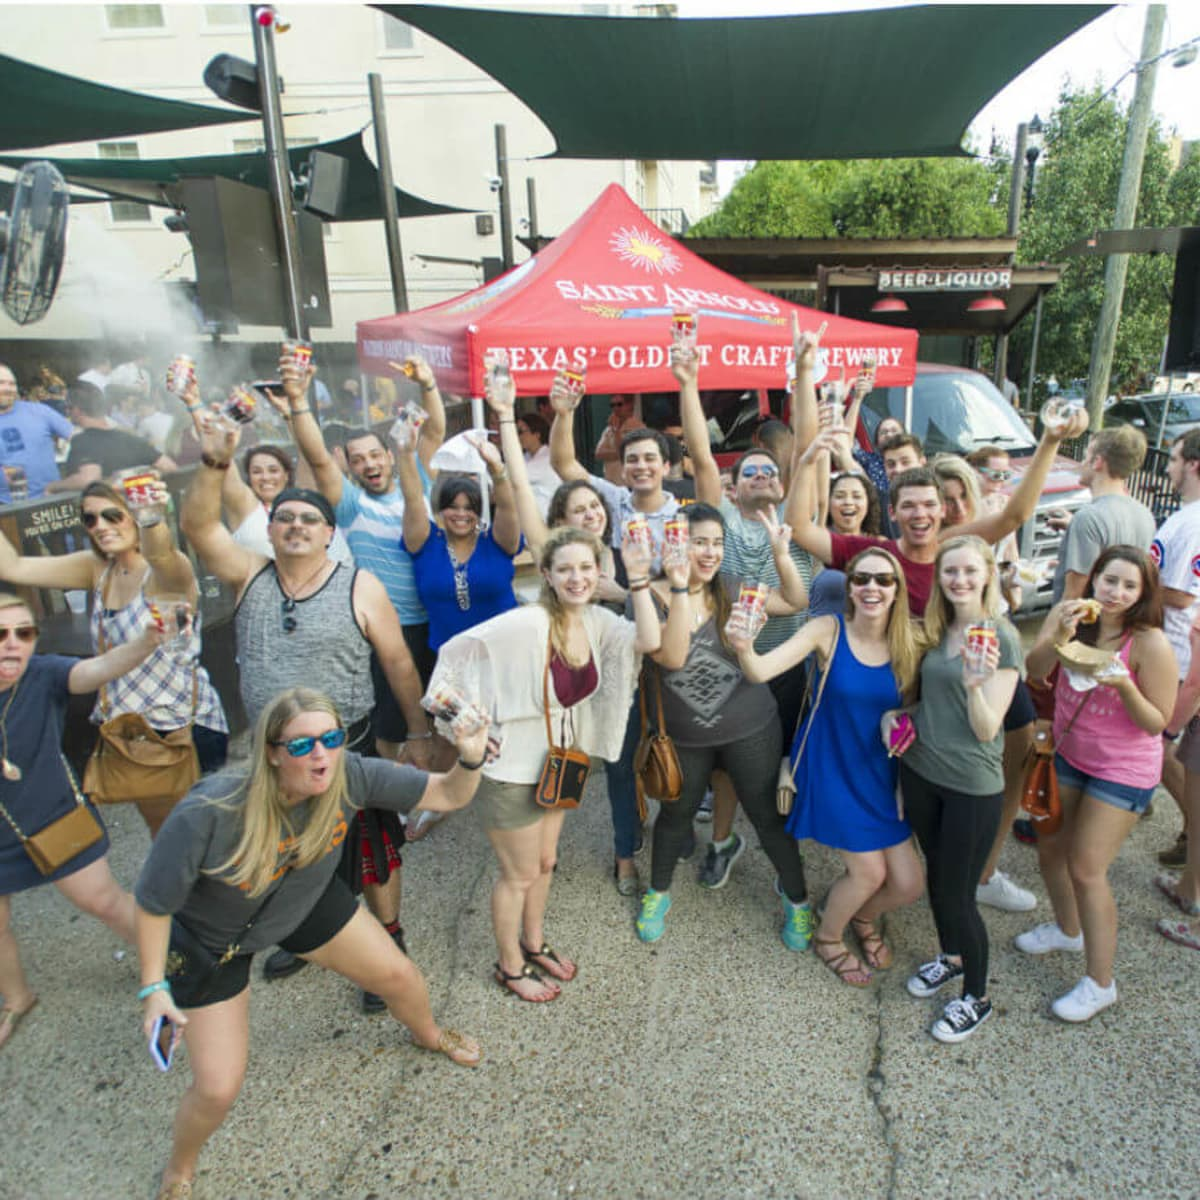 Saint Arnold Brewing Co. Pub Crawl